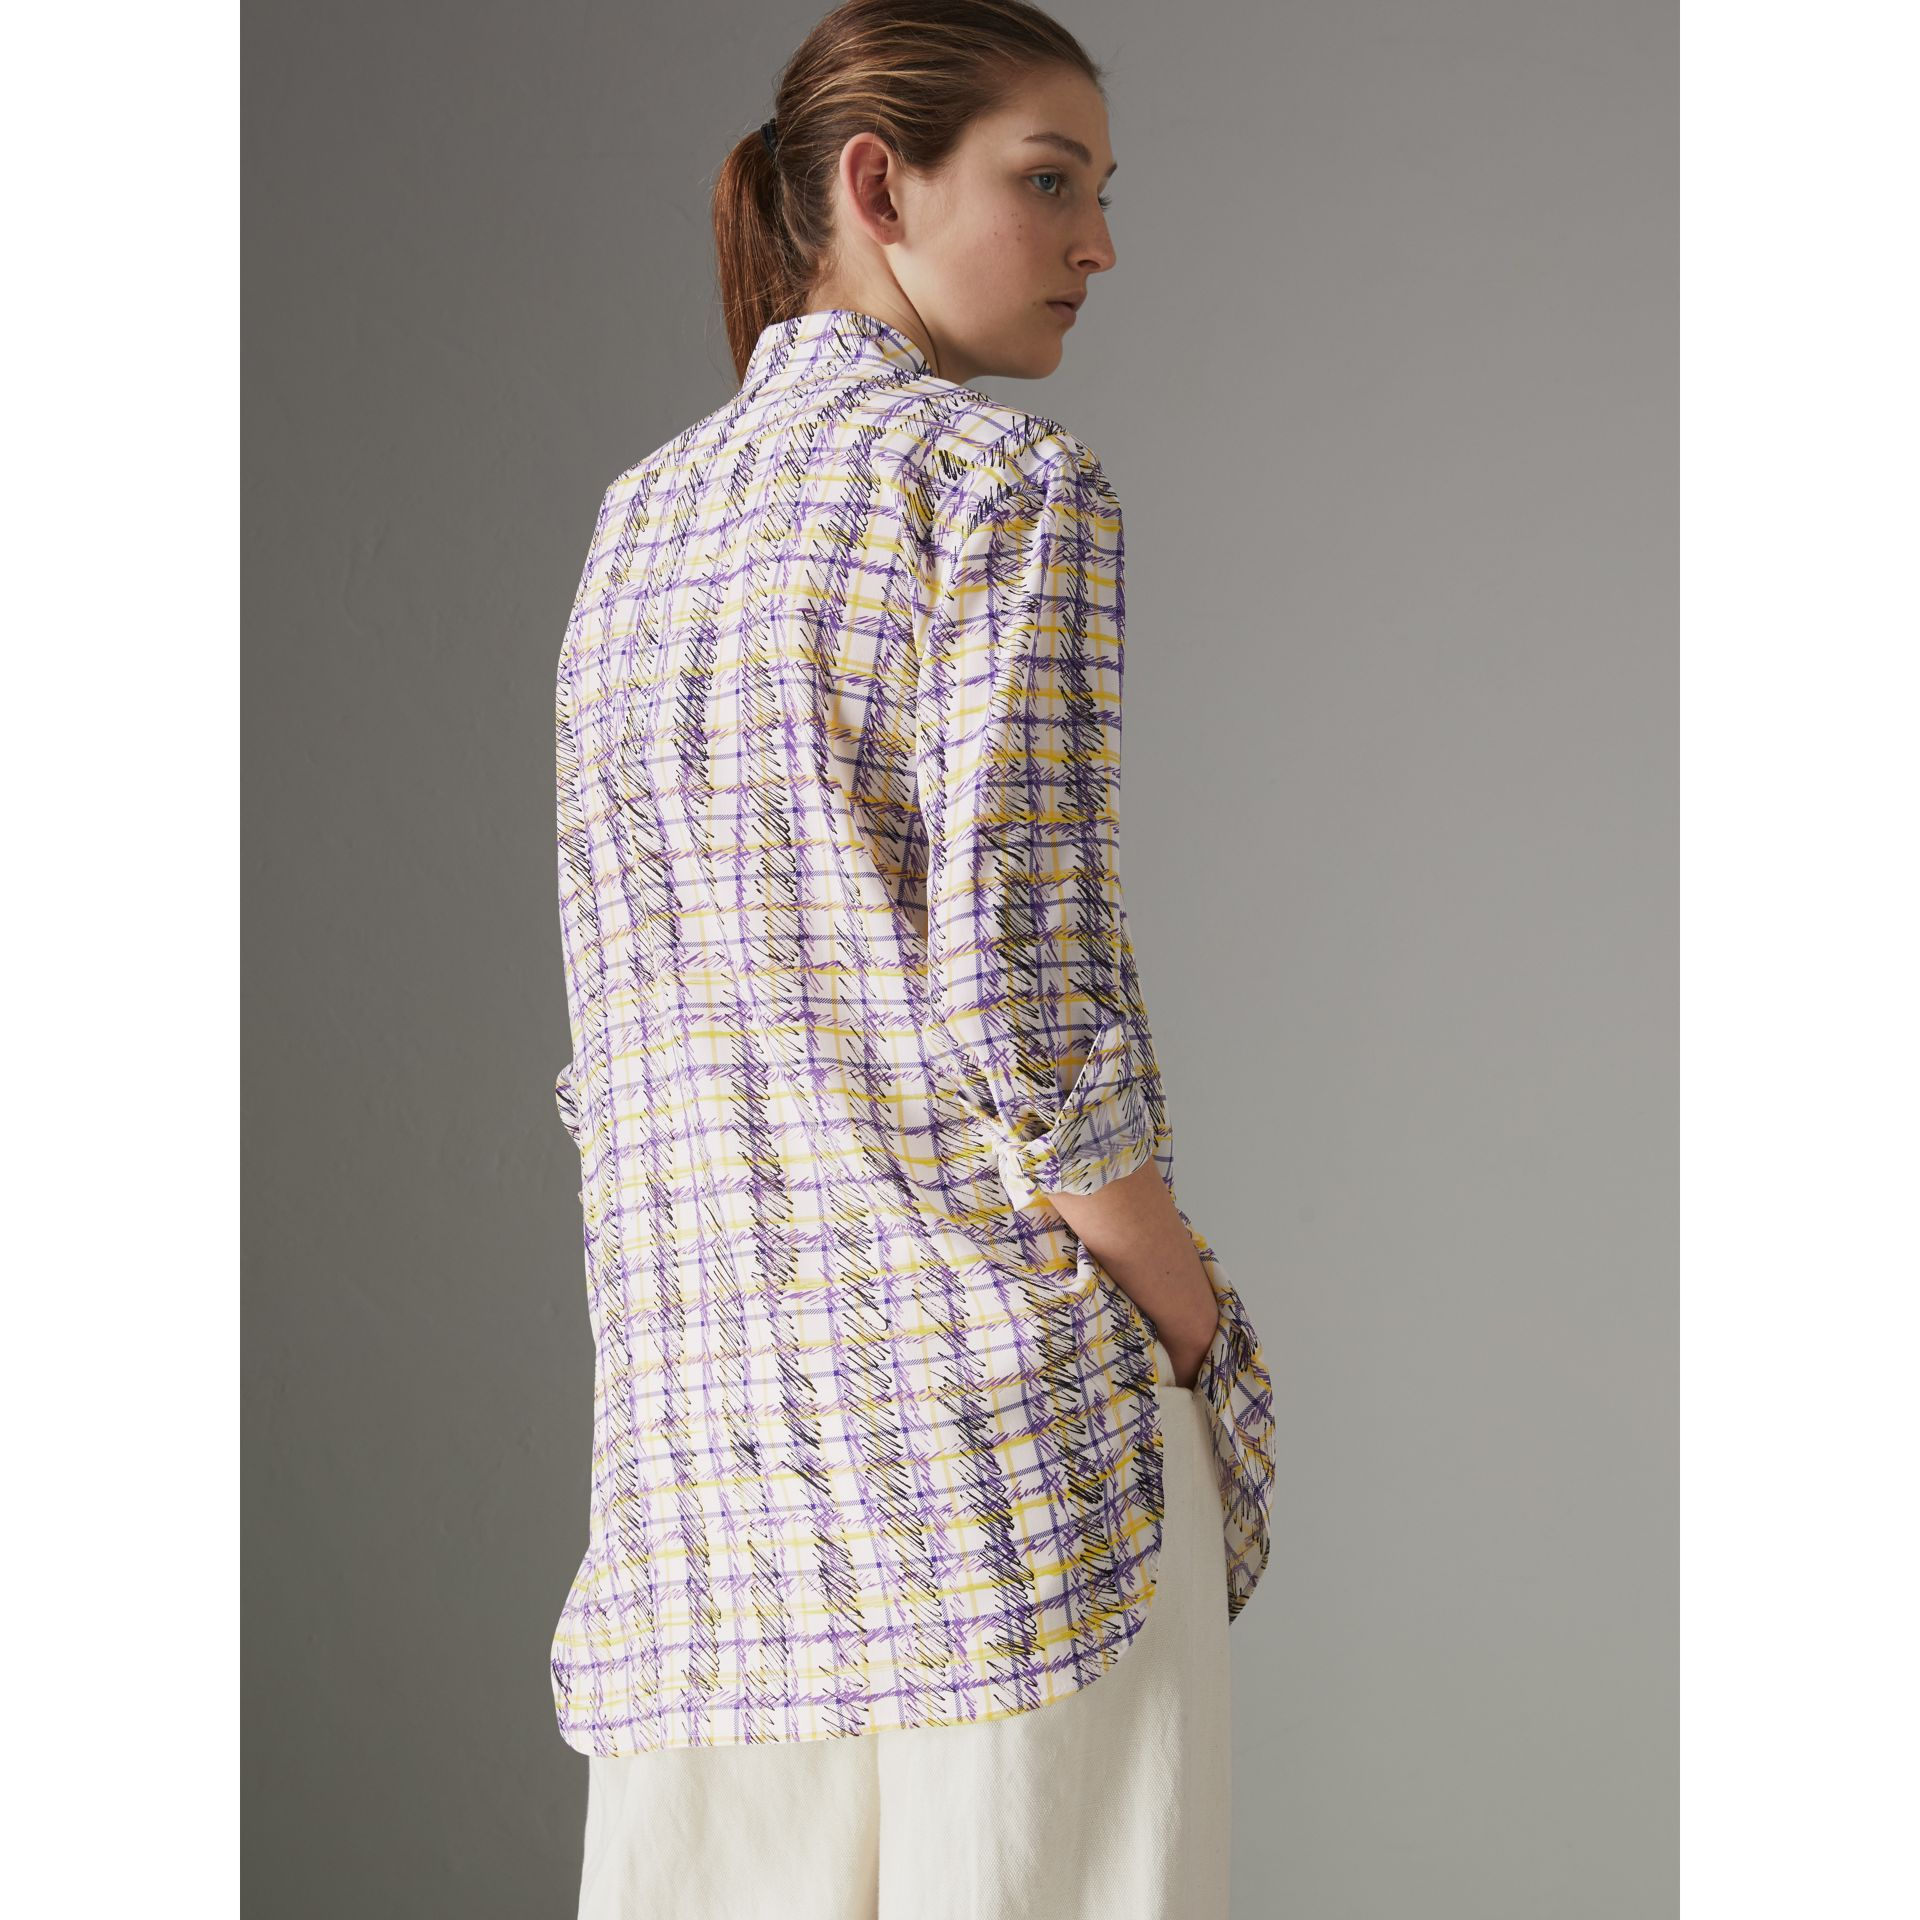 Scribble Check Print Silk Shirt in Heather - Women | Burberry United Kingdom - gallery image 2